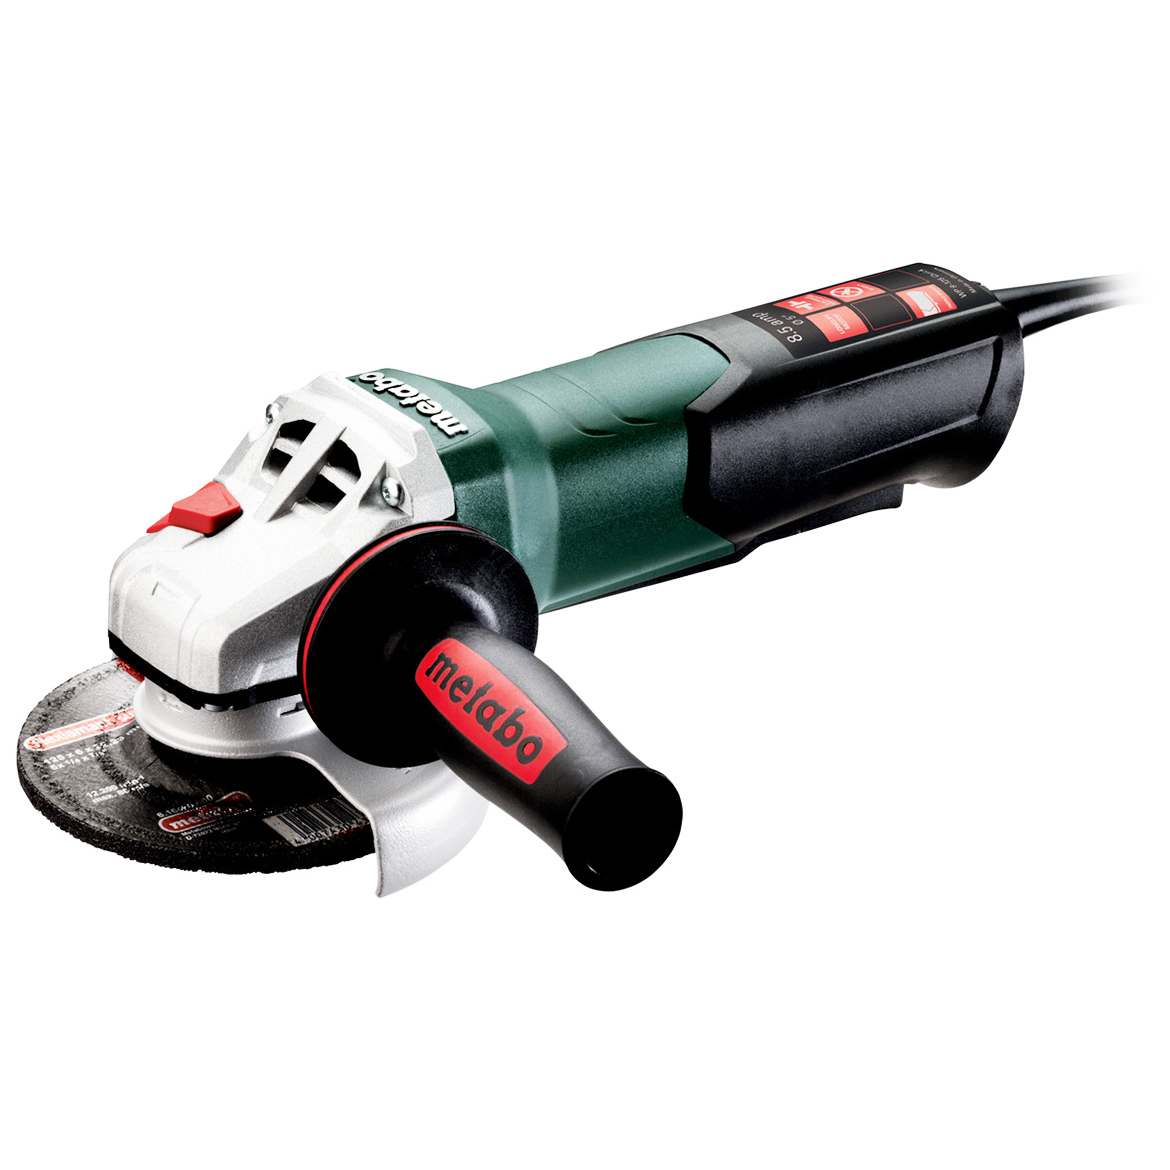 Metabo 600384420 5-Inch 8.5-Amp 10,500 RPM Angle Grinder with Non-lock Paddle